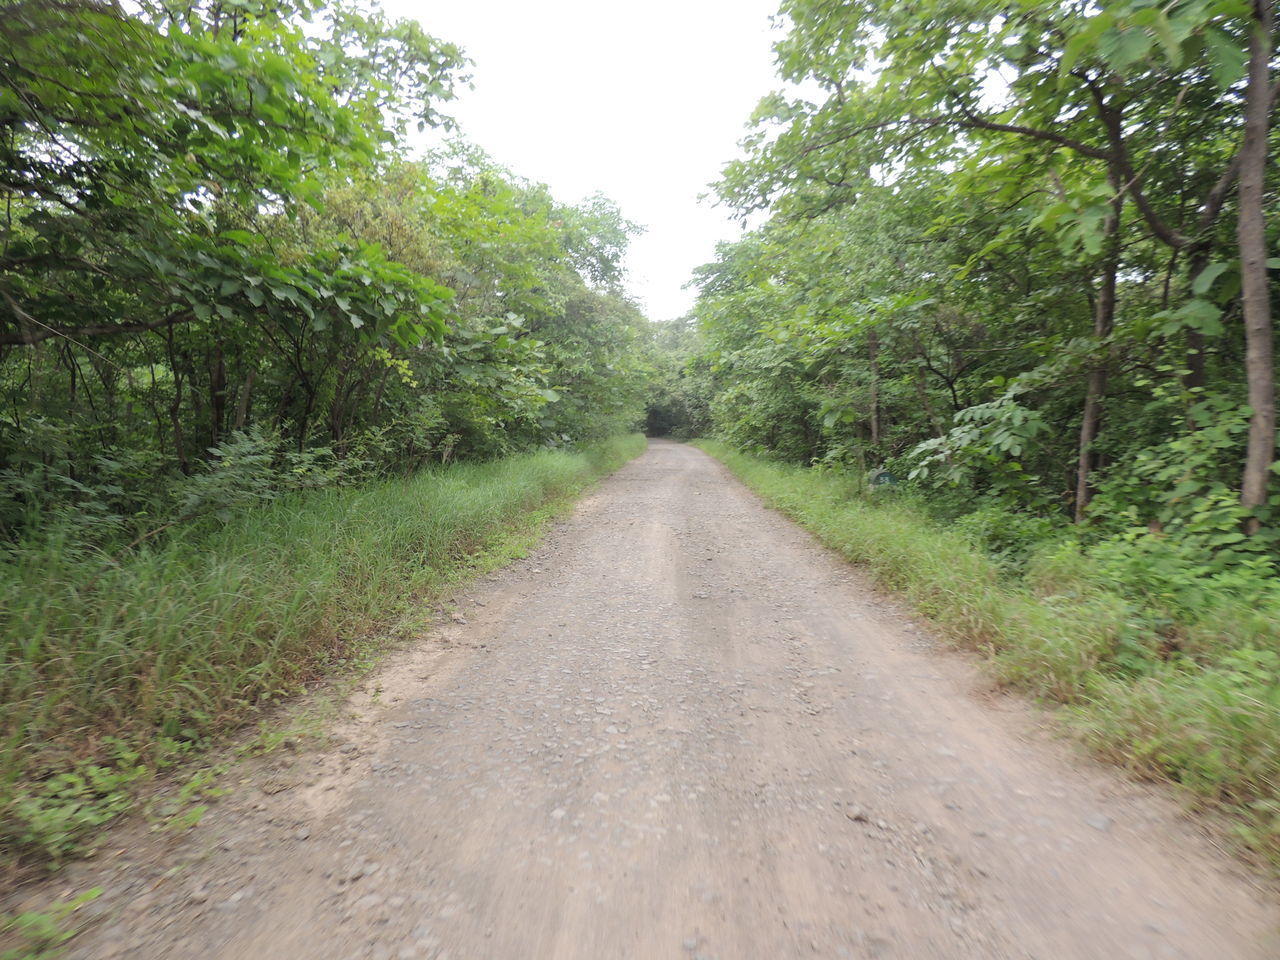 Beauty In Nature Dirt Road EyEmNewHere Forest Grass Green Color India Landscape Nature No People Non-urban Scene Outdoors Road The Way Forward Tree Without Edit ^^